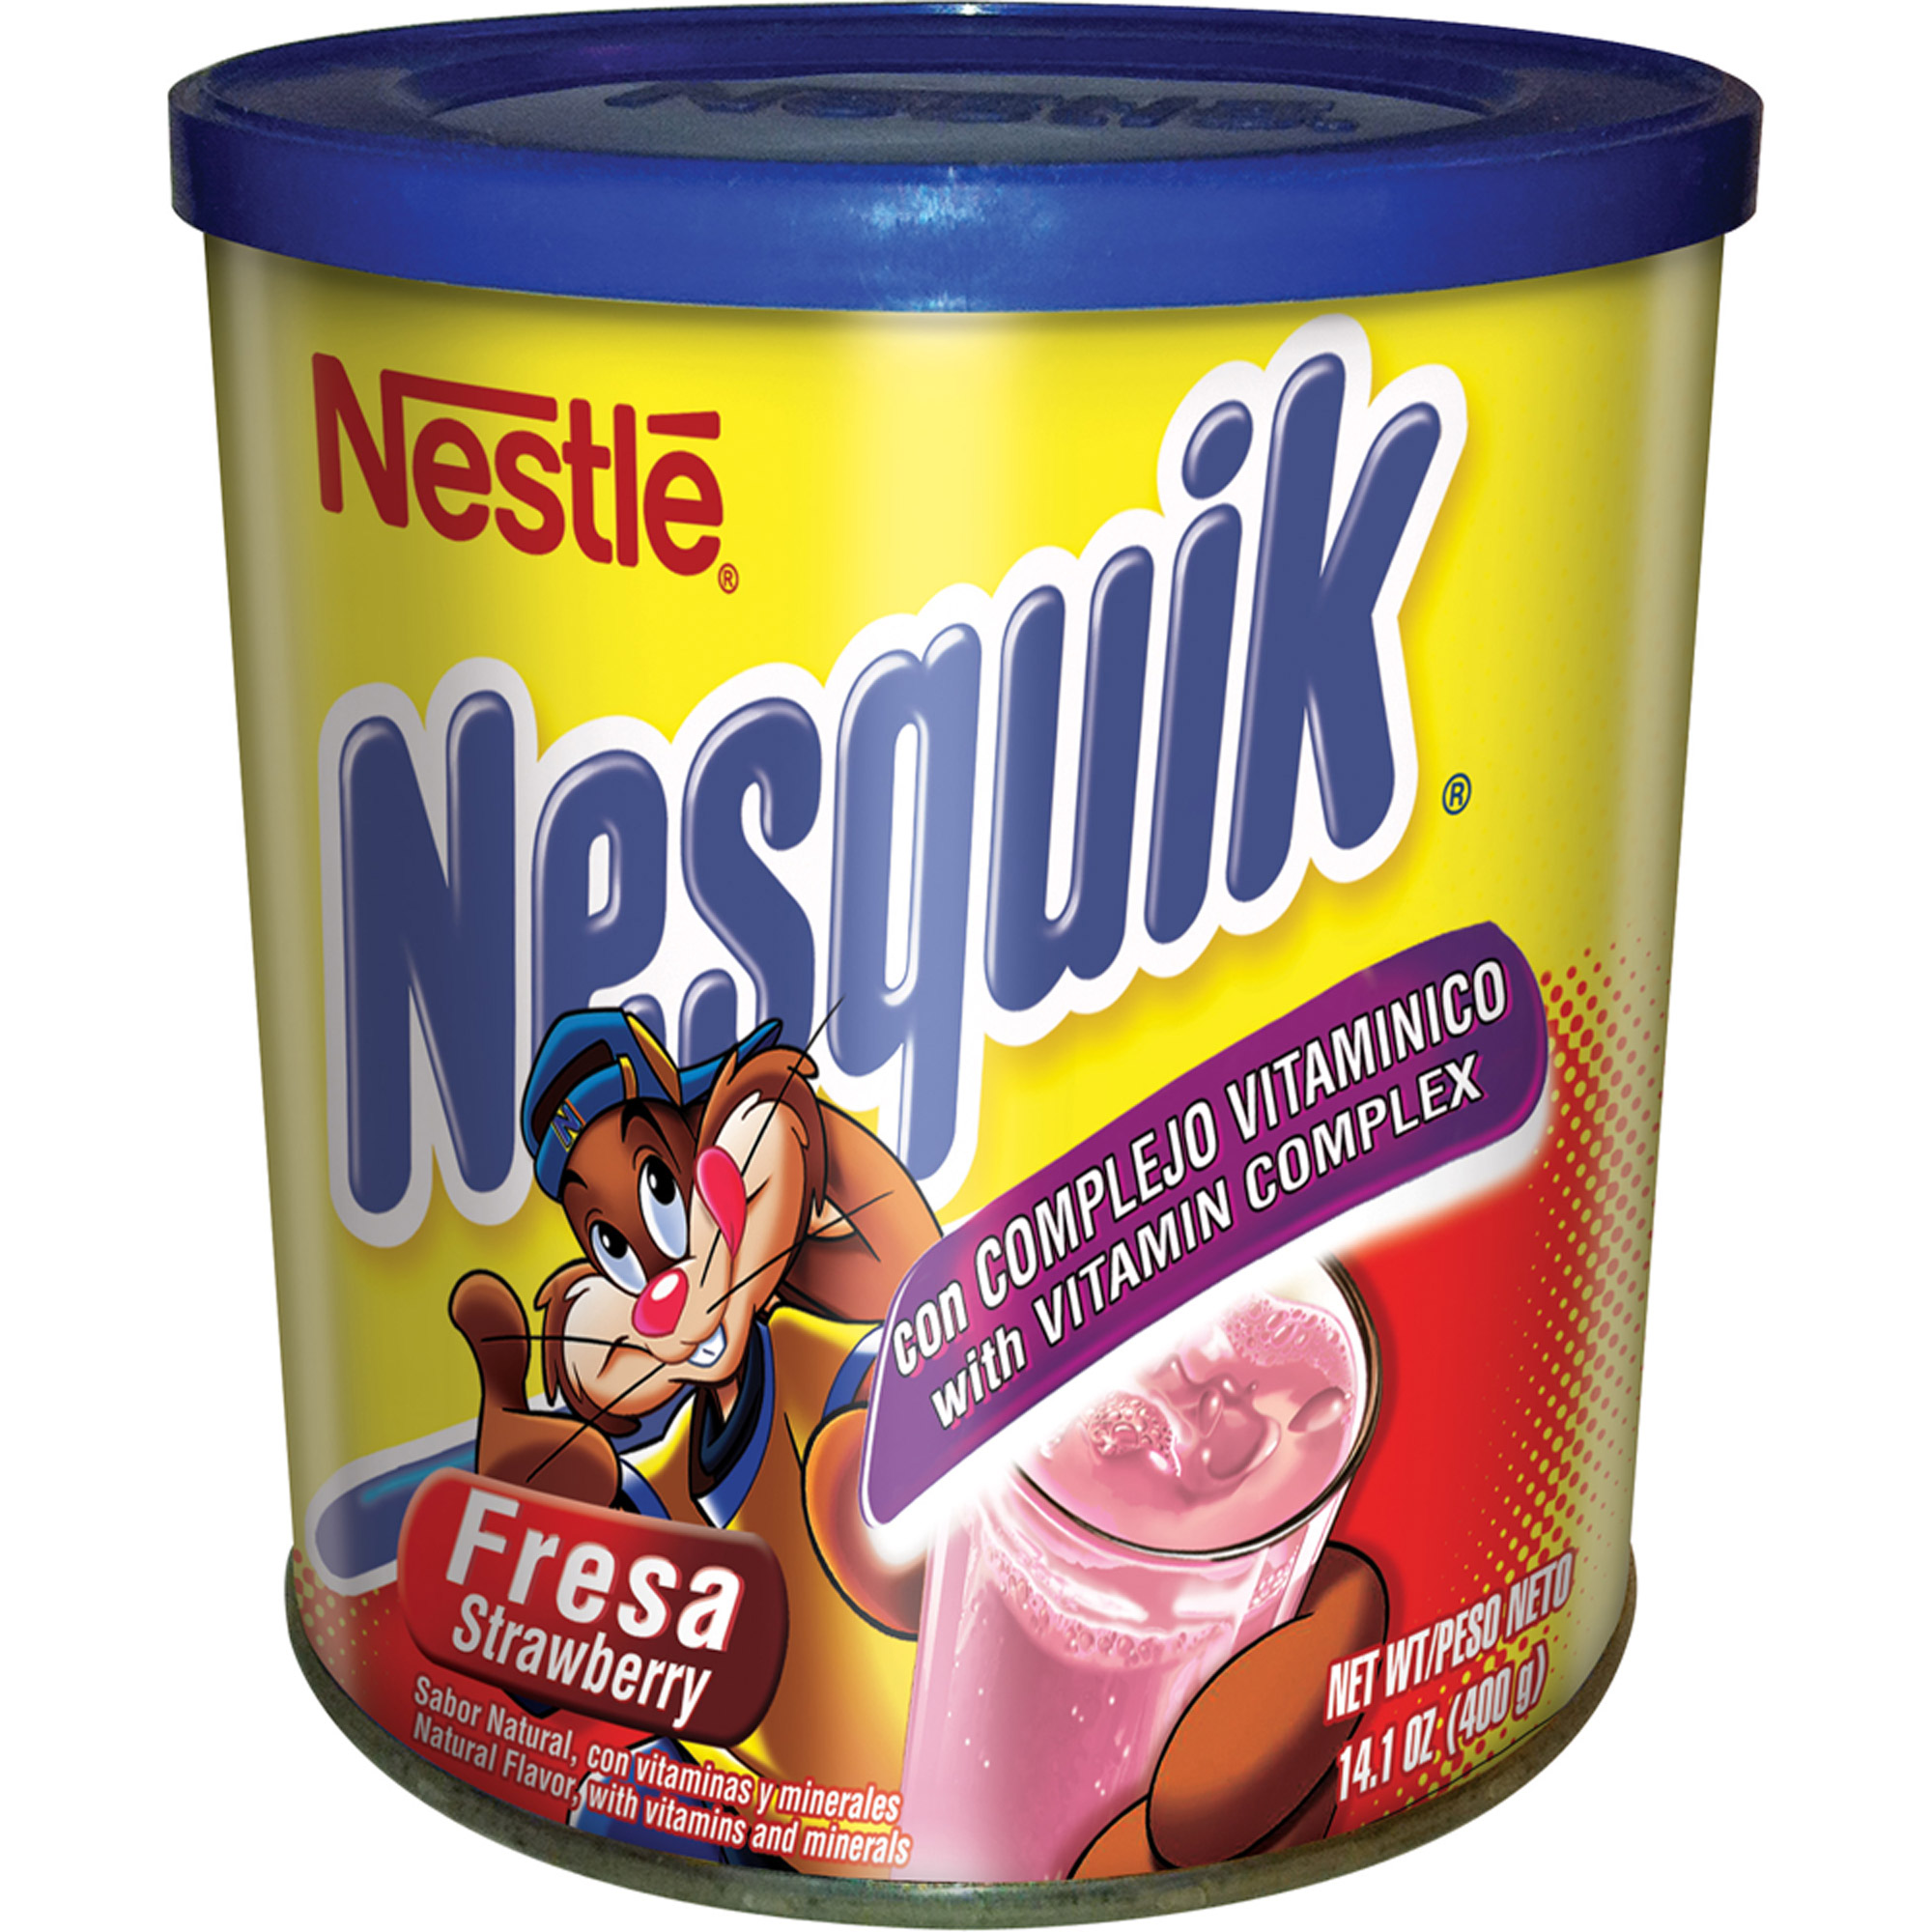 Nesquik Strawberry Flavor 14.1 oz. Canister